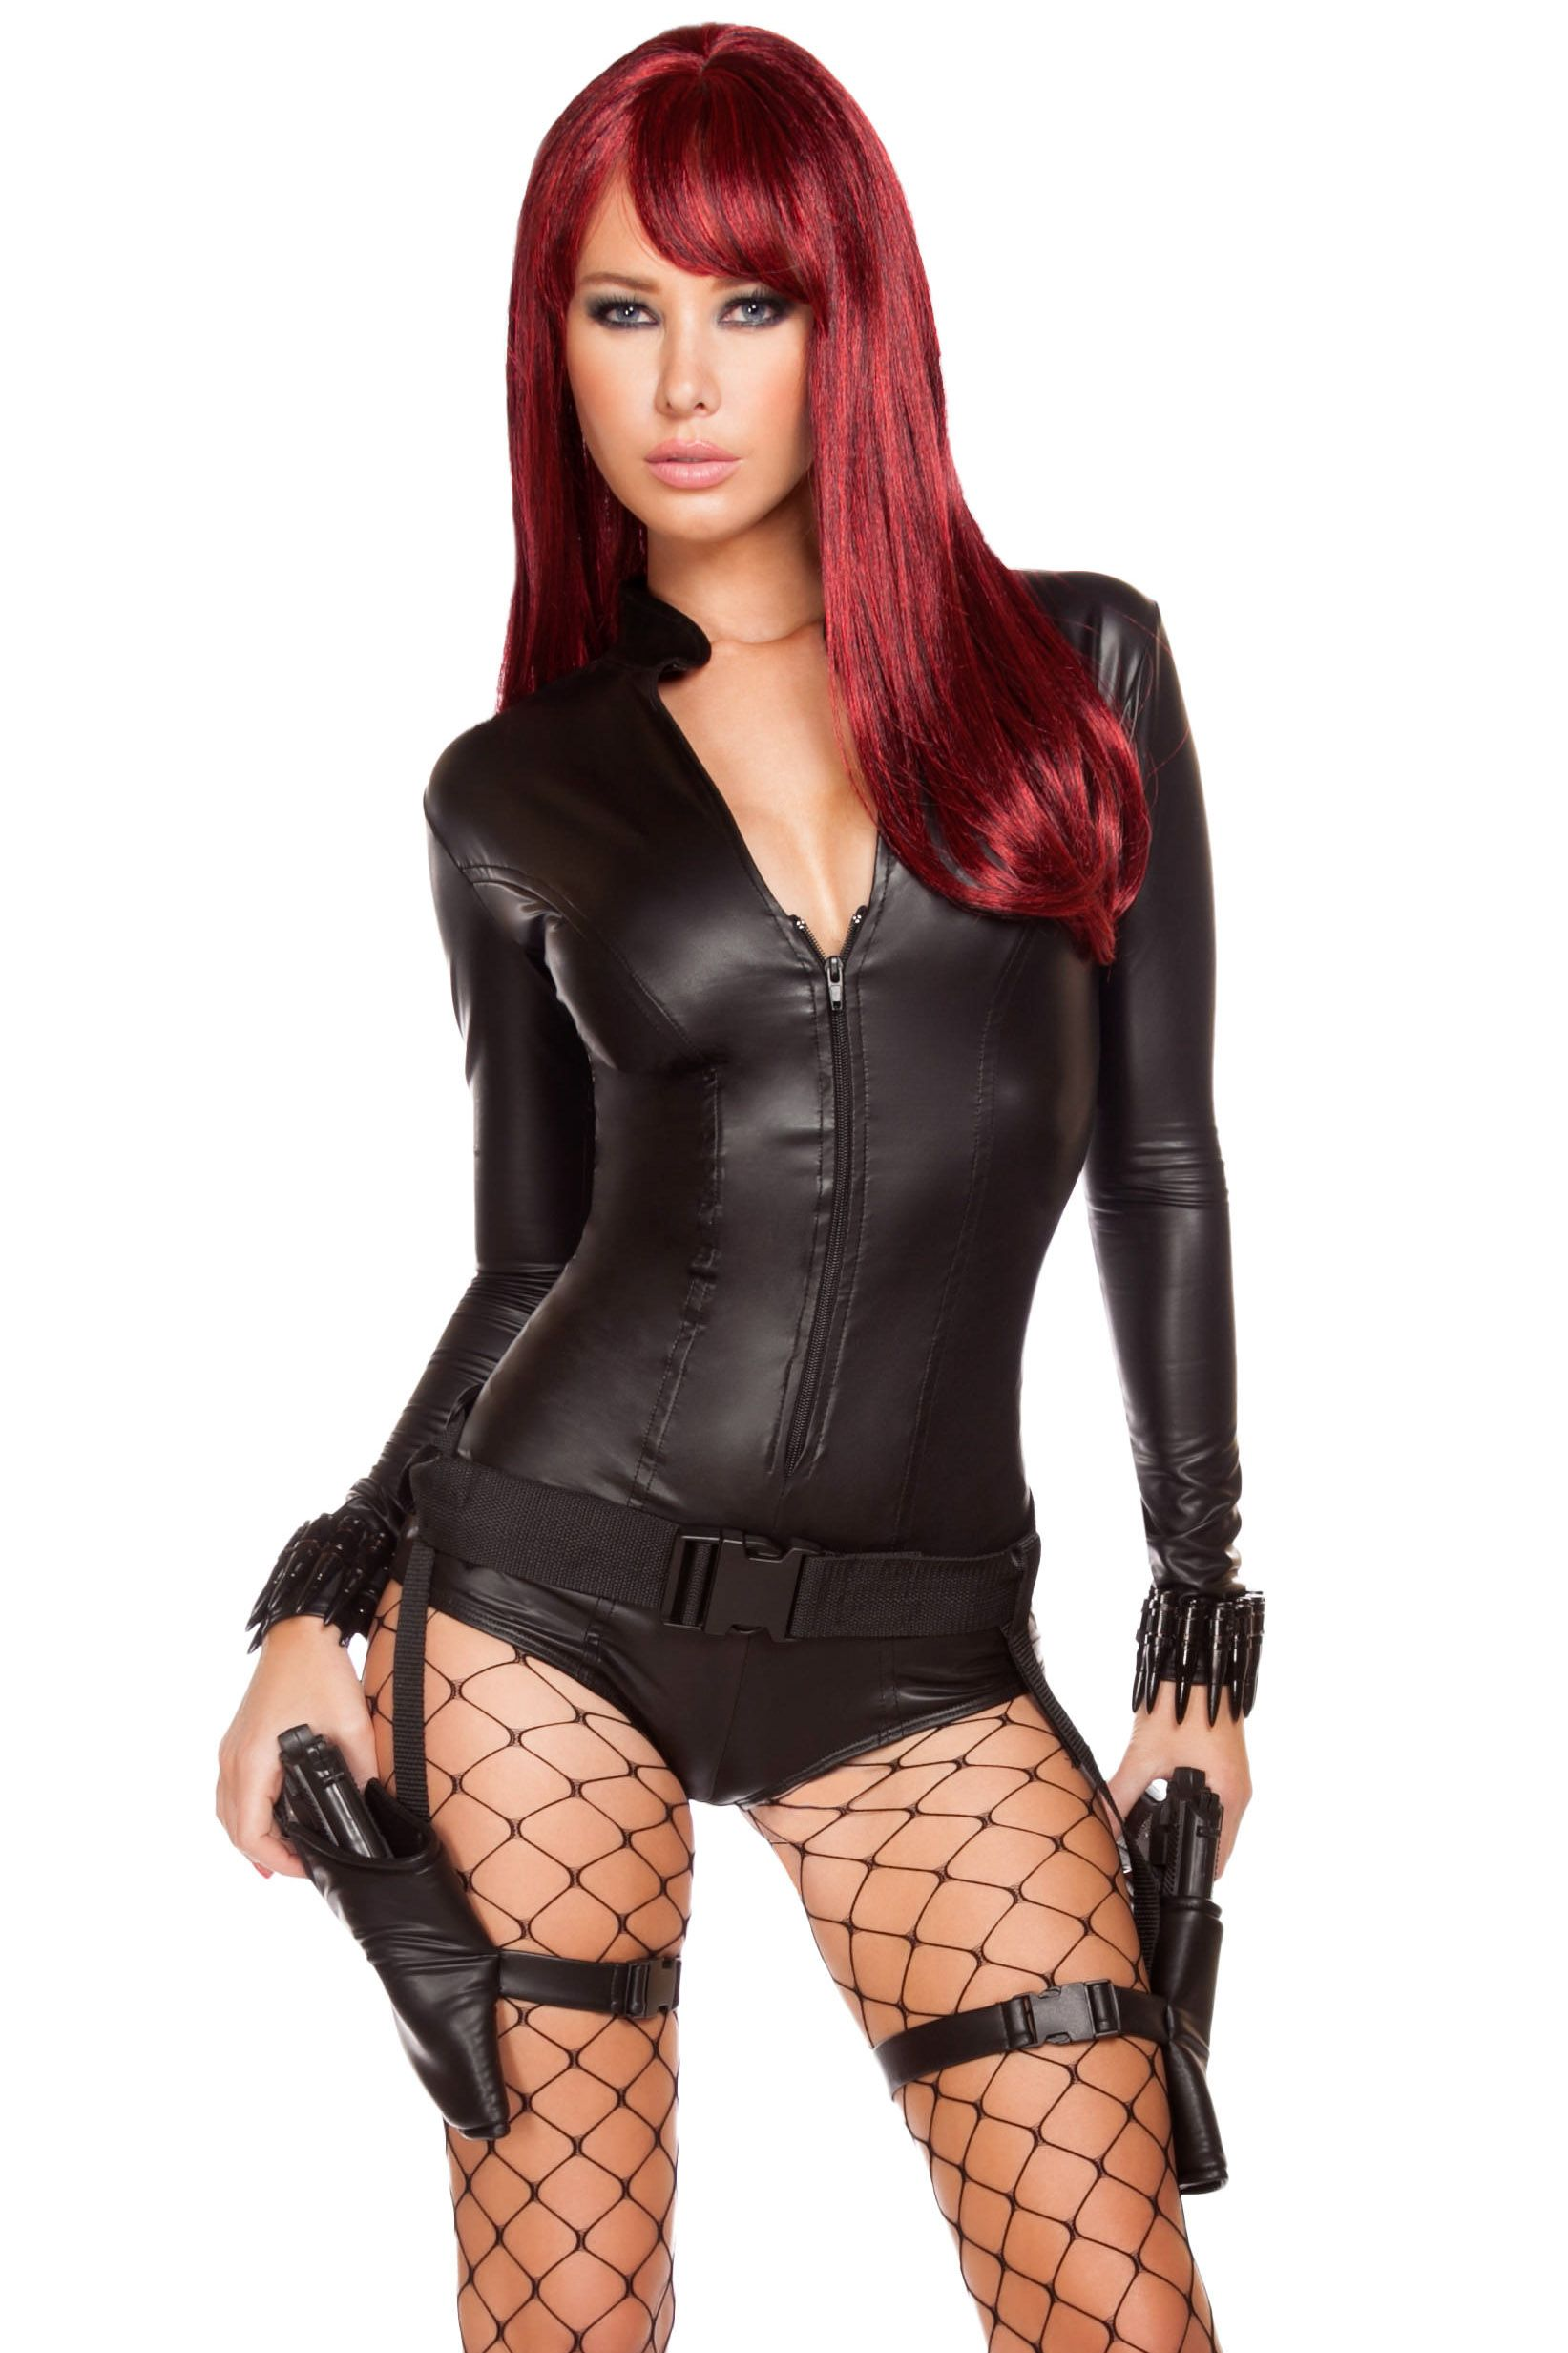 Hot Hitwoman Costume | Women's Halloween Costumes at LD ...